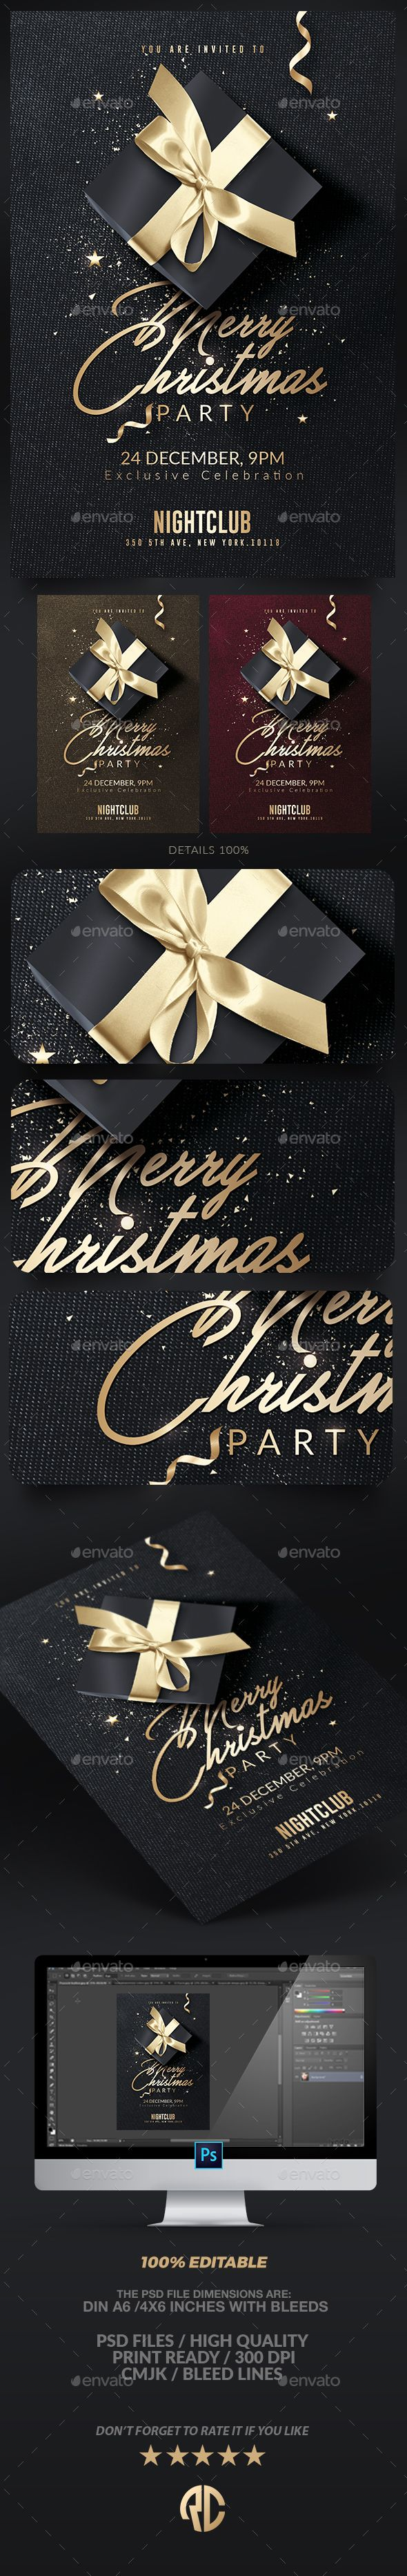 Classy Christmas Invitation | Psd Flyer - Events #Flyers Download here: https://graphicriver.net/item/classy-christmas-invitation-psd-flyer/18710775?ref=alena994